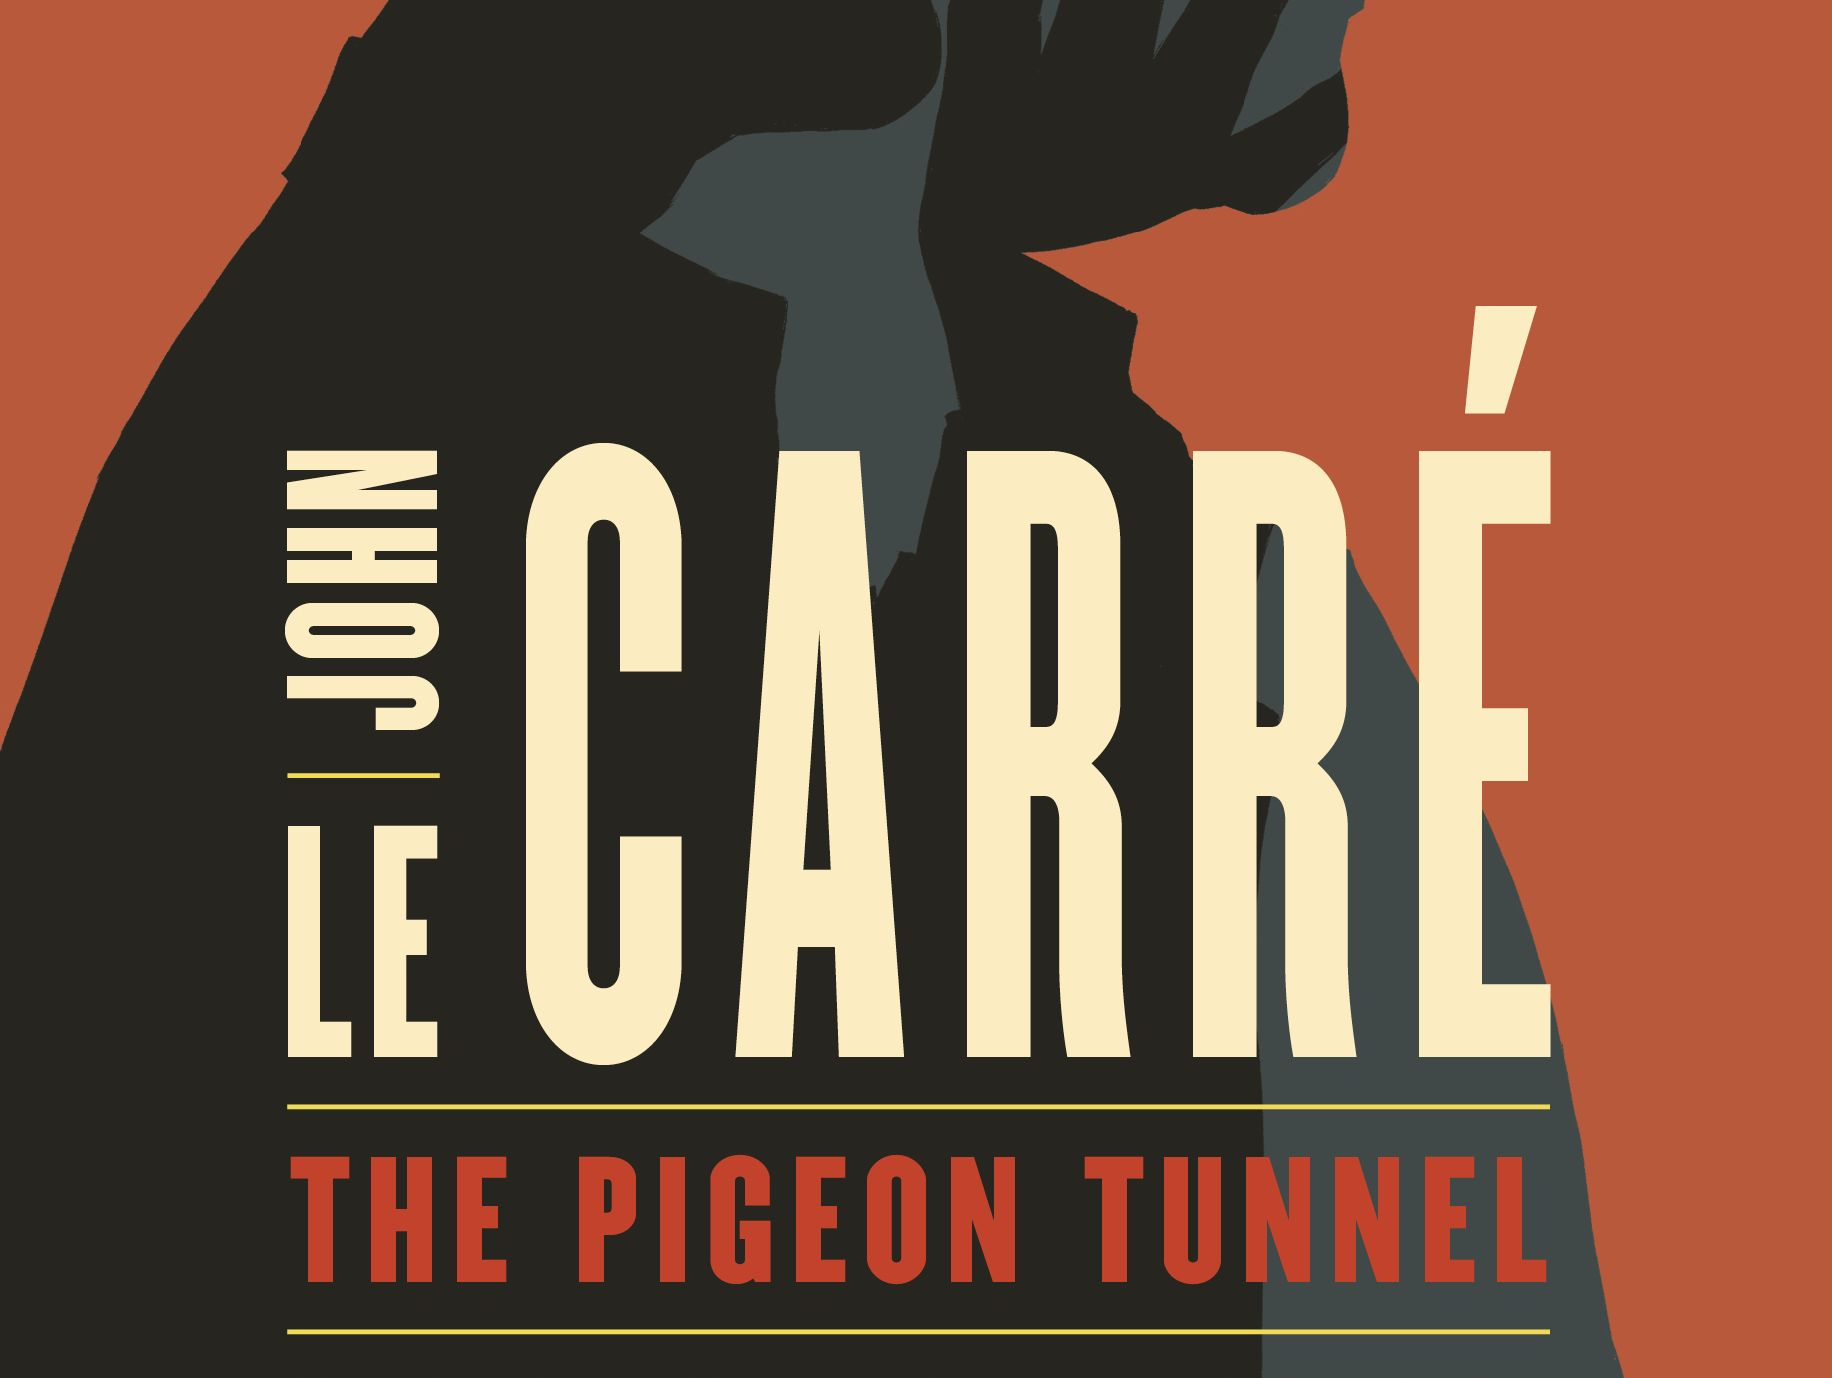 'The Pigeon Tunnel' by John le Carre